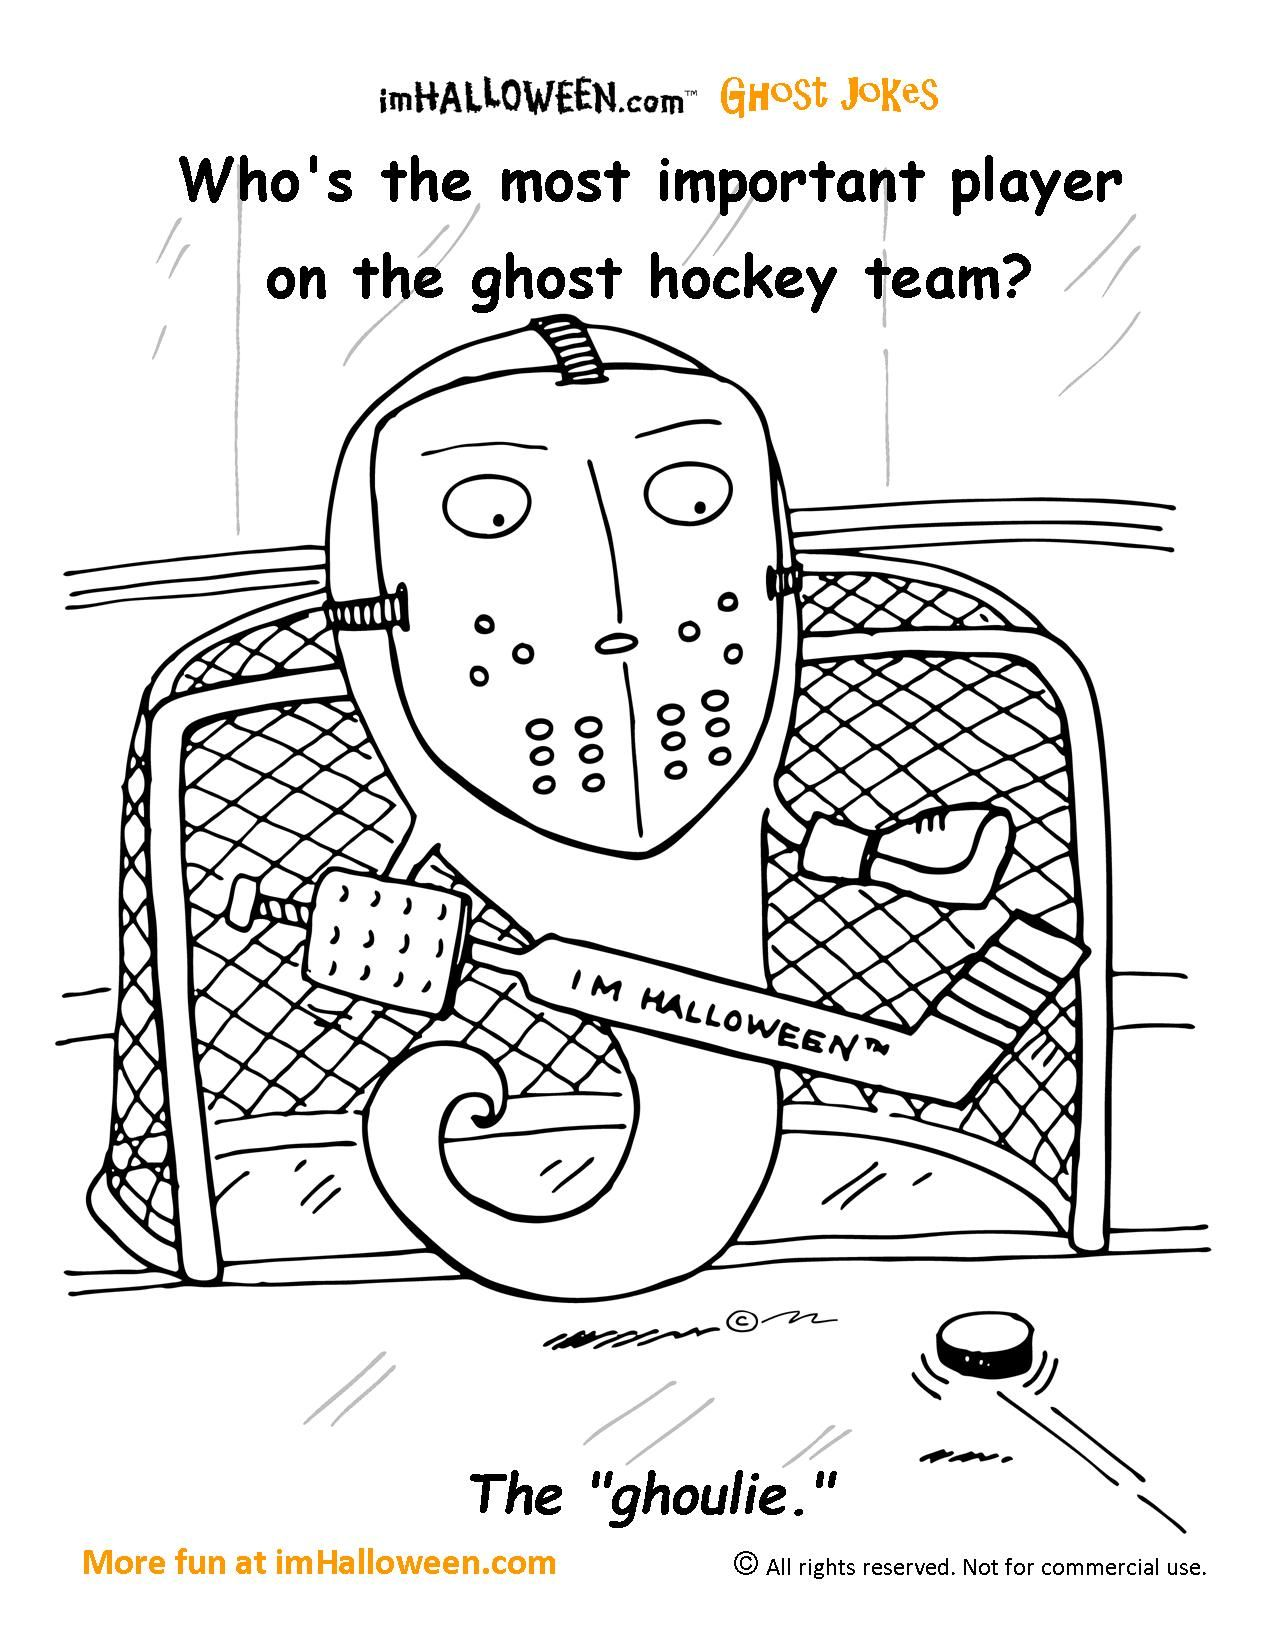 hockey ghost joke coloring page and there u0027s more halloween fun at